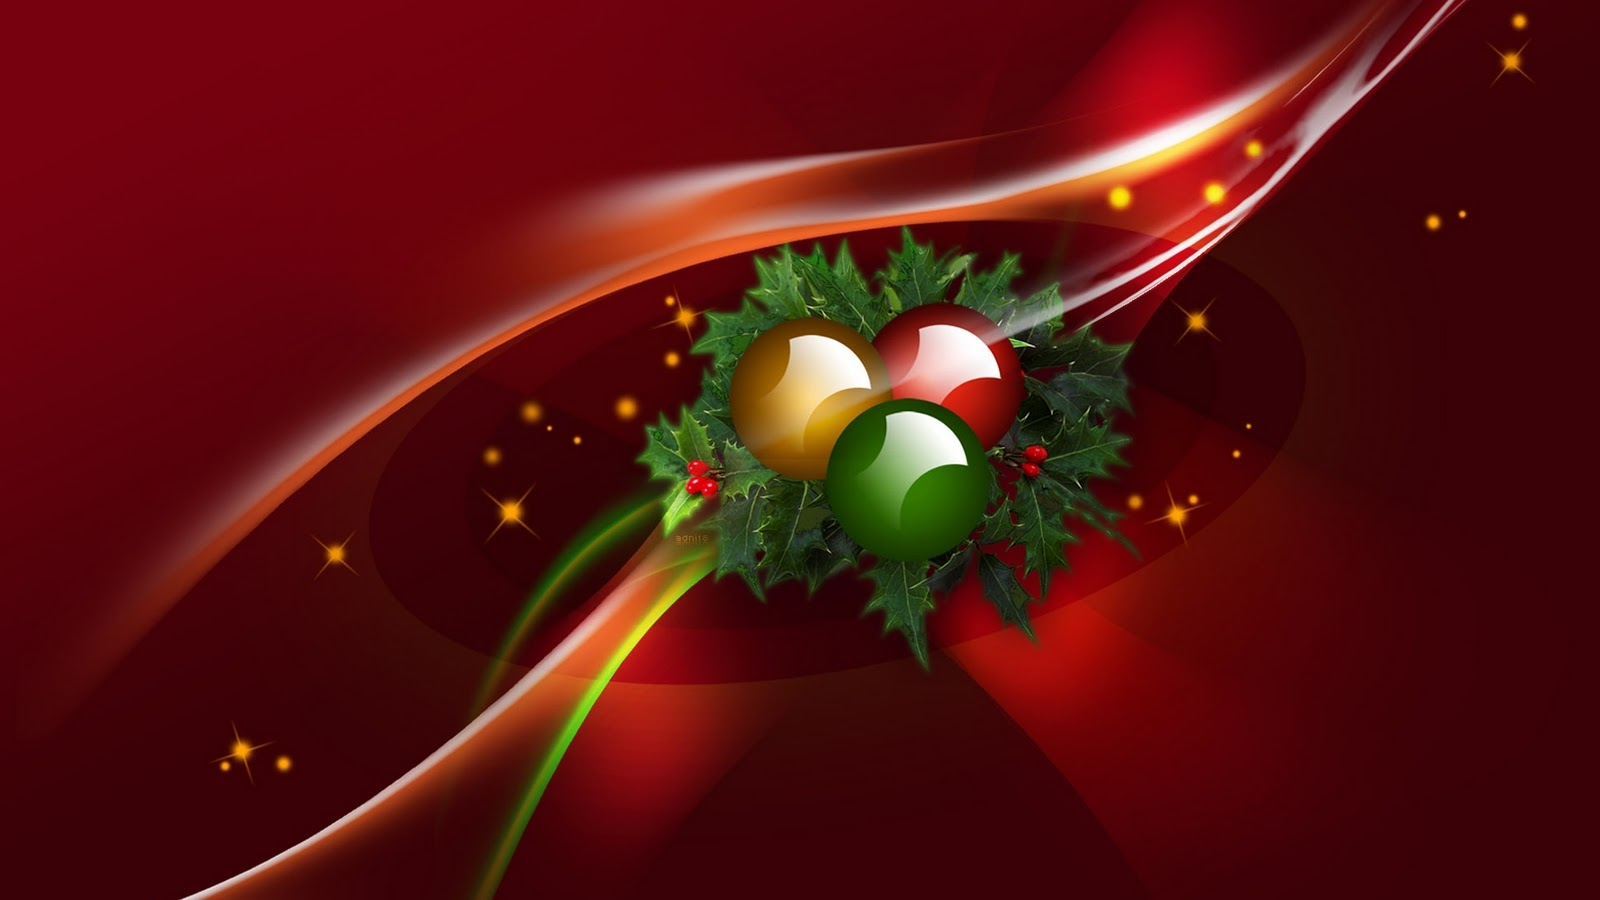 Desktop Christmas Greeting 2014